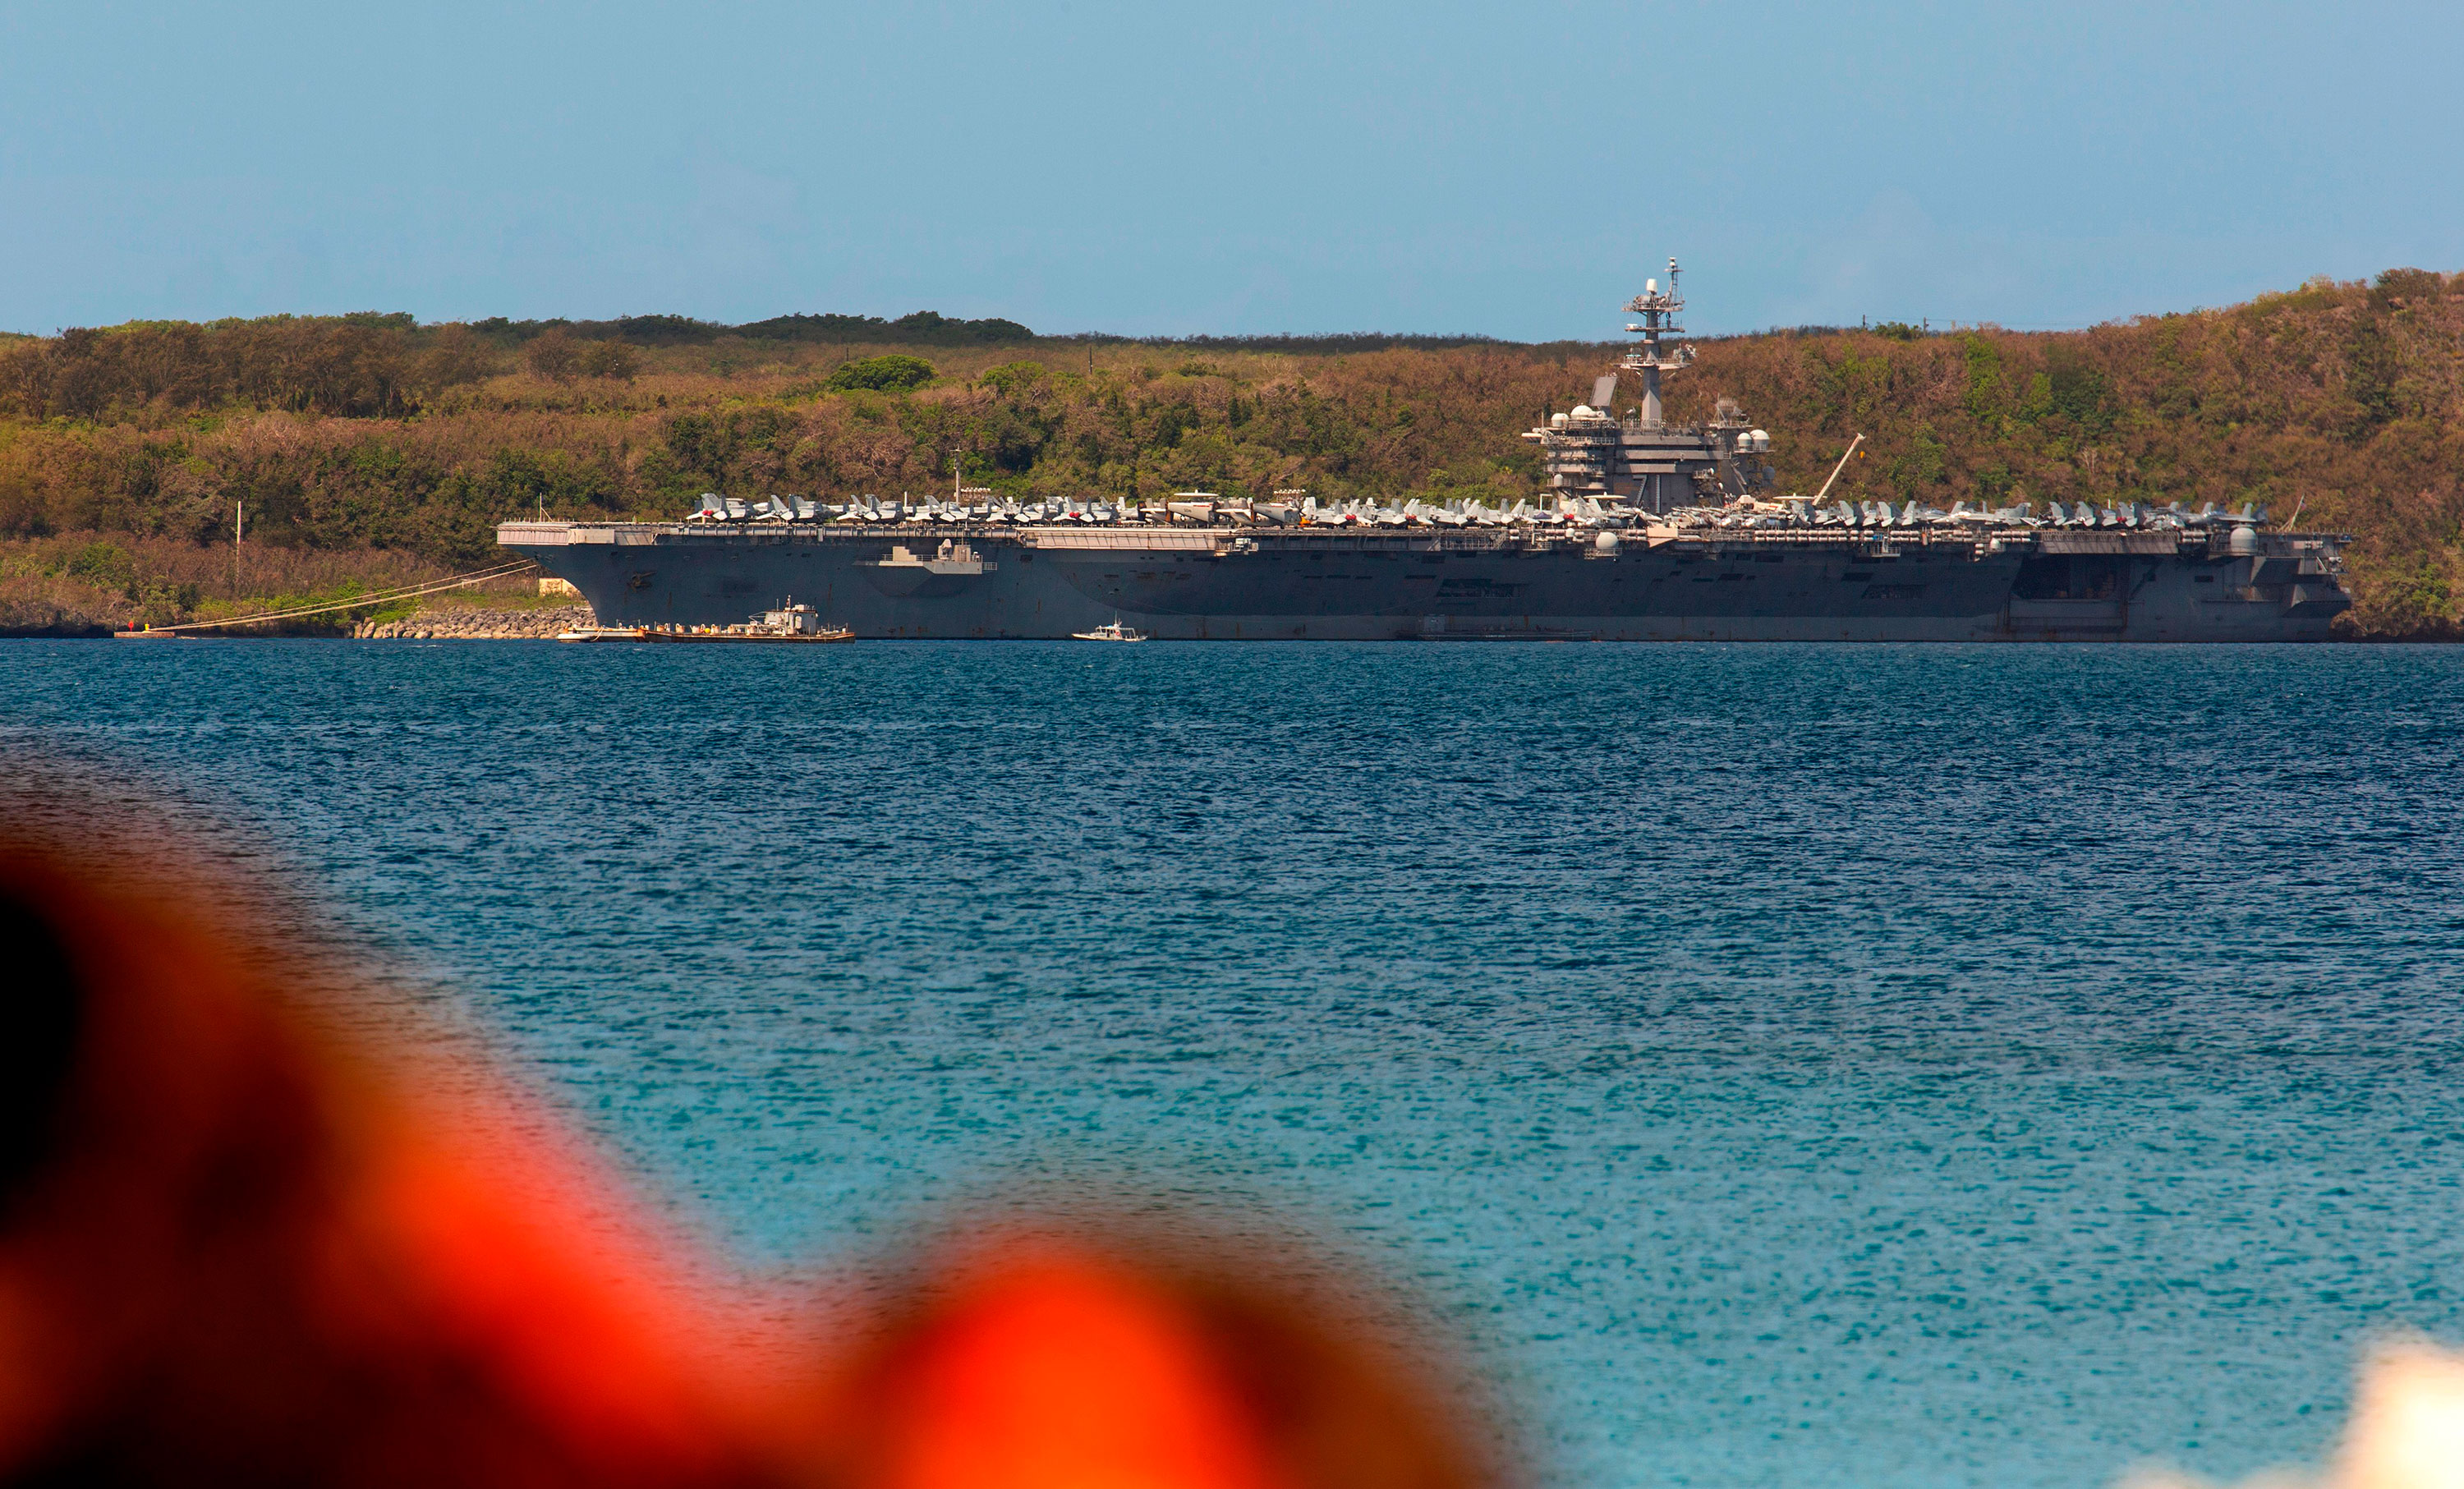 The aircraft carrier USS Theodore Roosevelt is seen docked at Naval Base Guam in Apra Harbor on April 10.